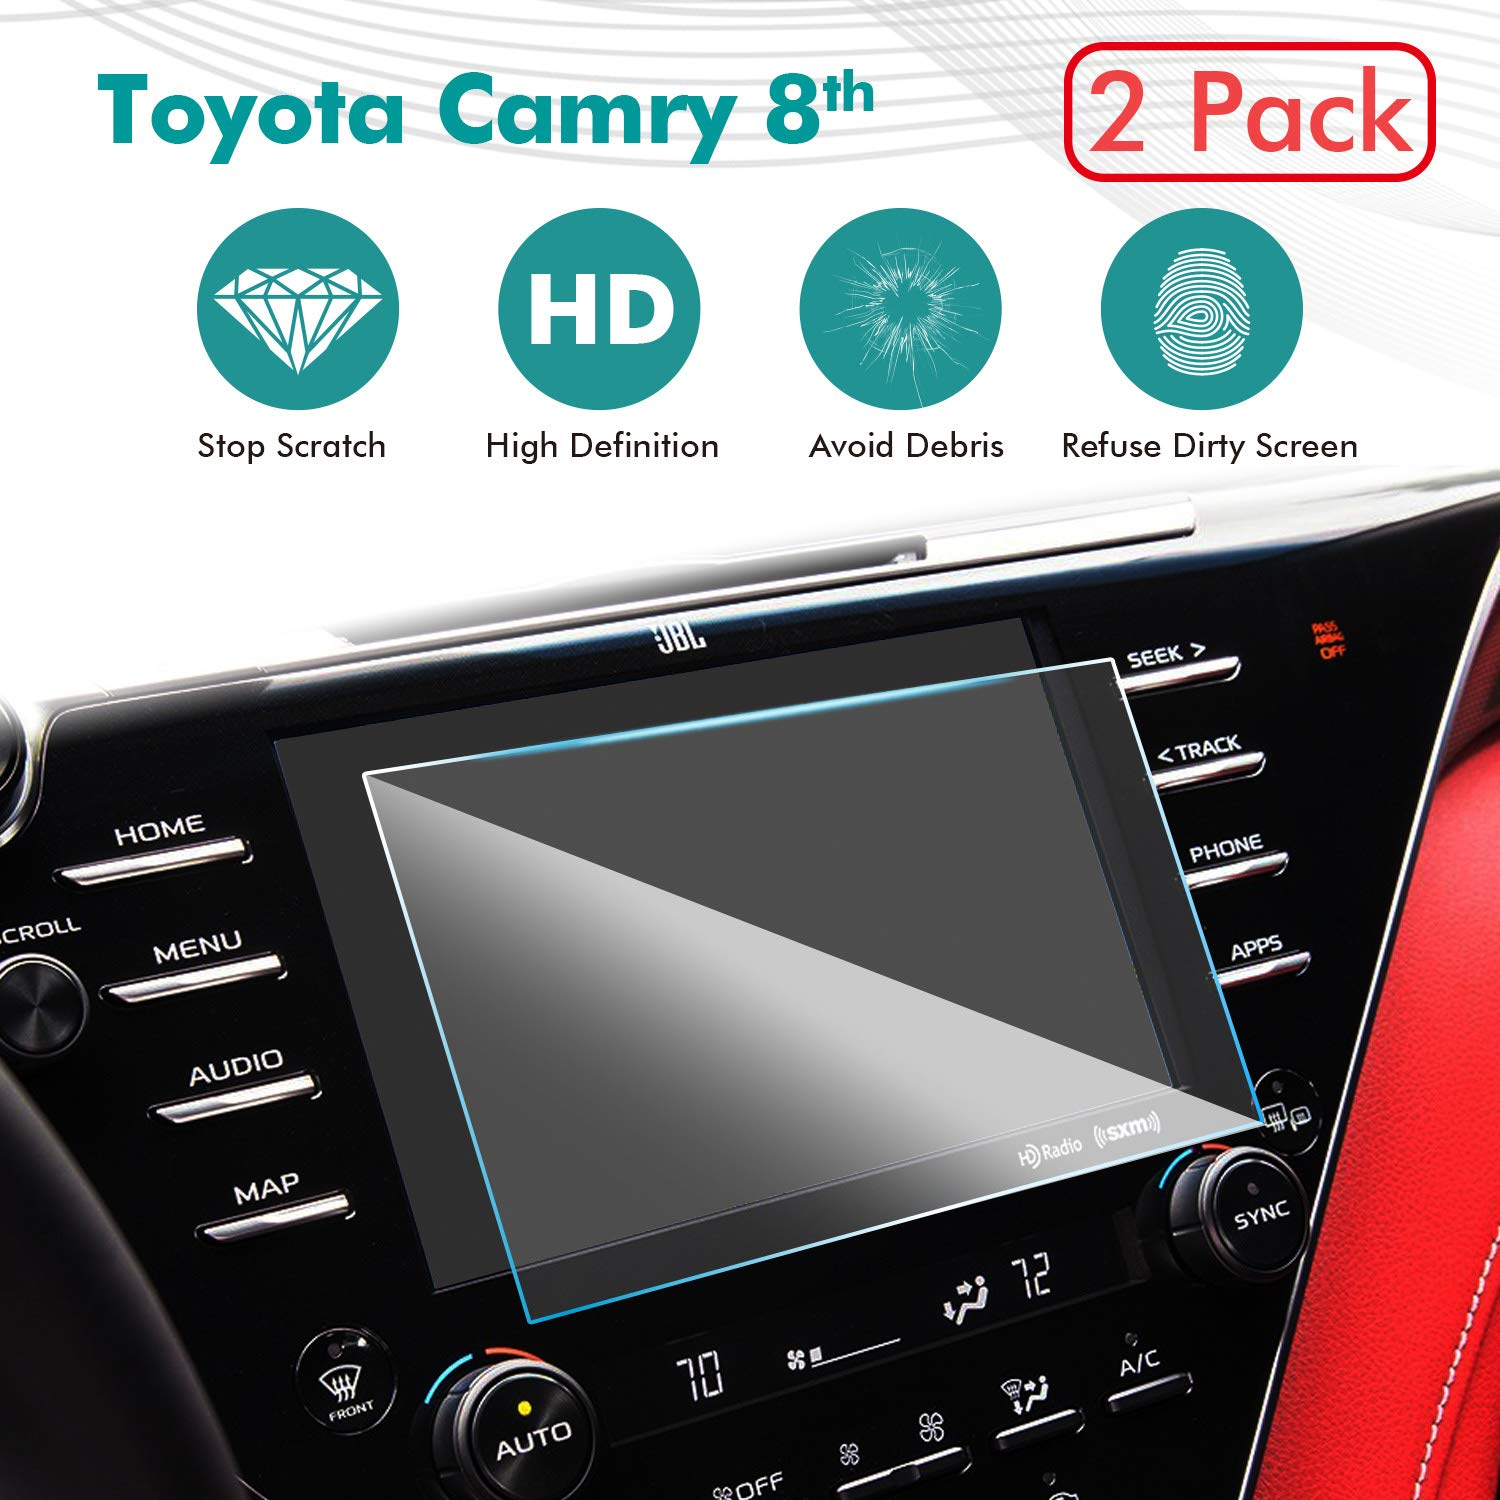 2018 Toyota Camry 7-in in-Dash Screen Protector GSW Digital technology 2 Pack AXVH70 AXVH70N Compatible with LE SE HD Clear Tempered Glass Car Navigation Screen Protective Film